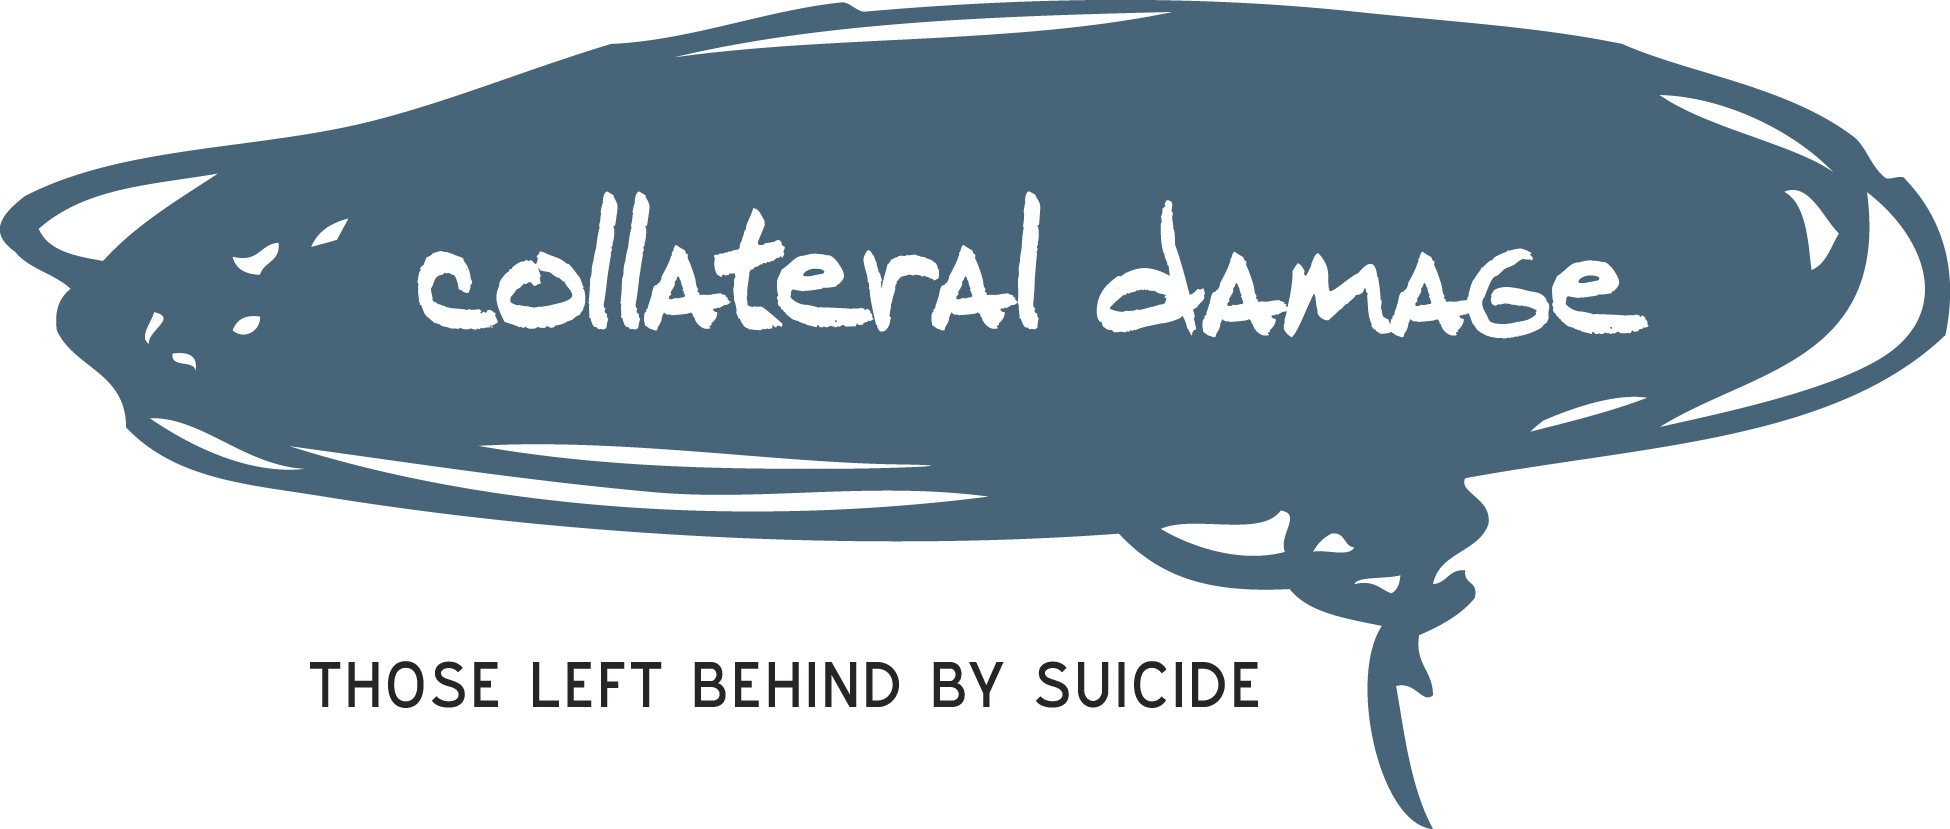 Help Break the Stigma on Suicide